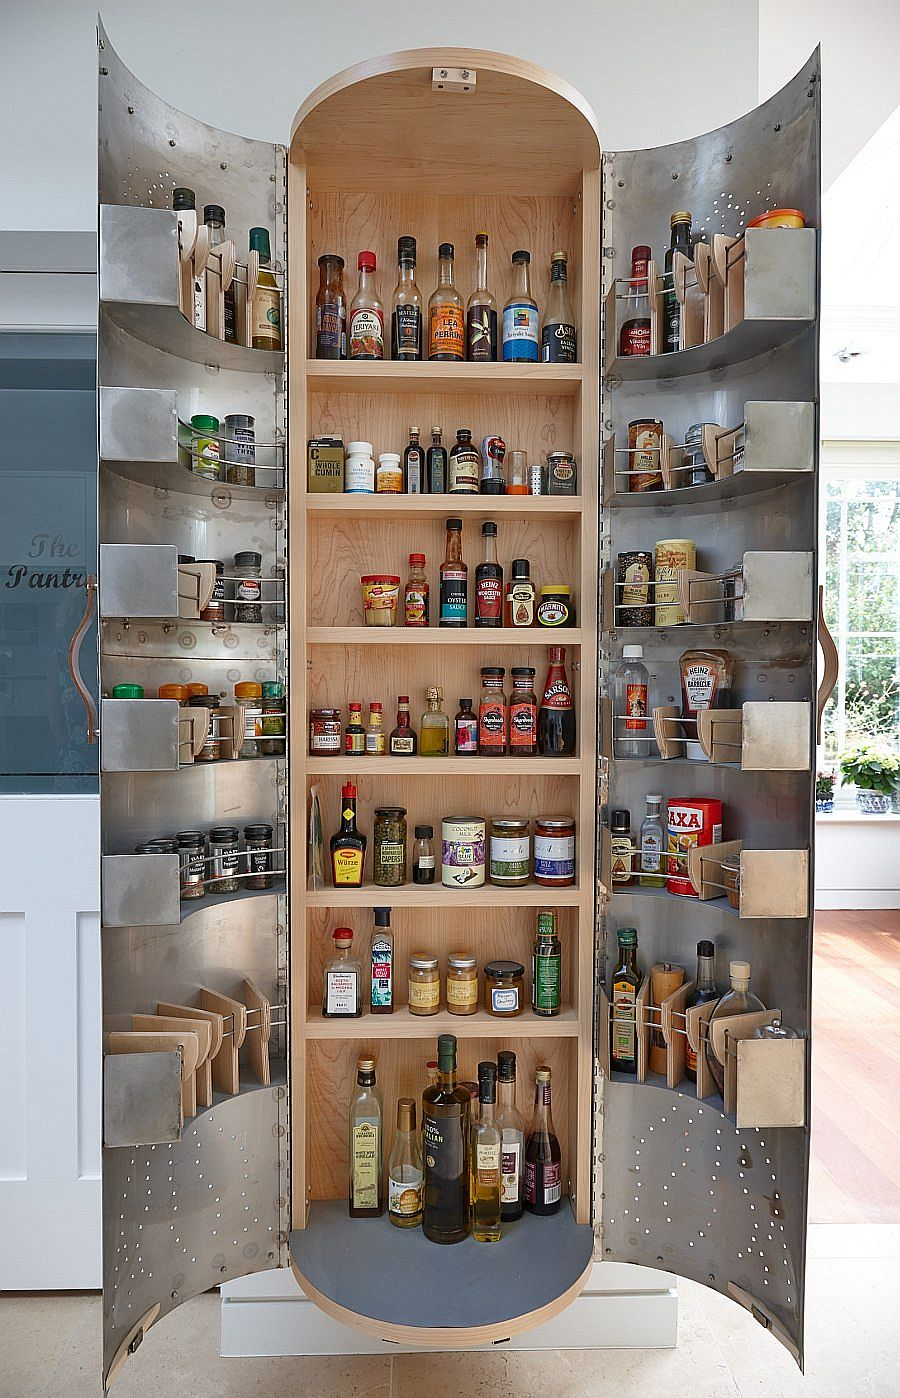 freestanding kitchen pantry cool gadgets 10 small ideas for an organized, space-savvy